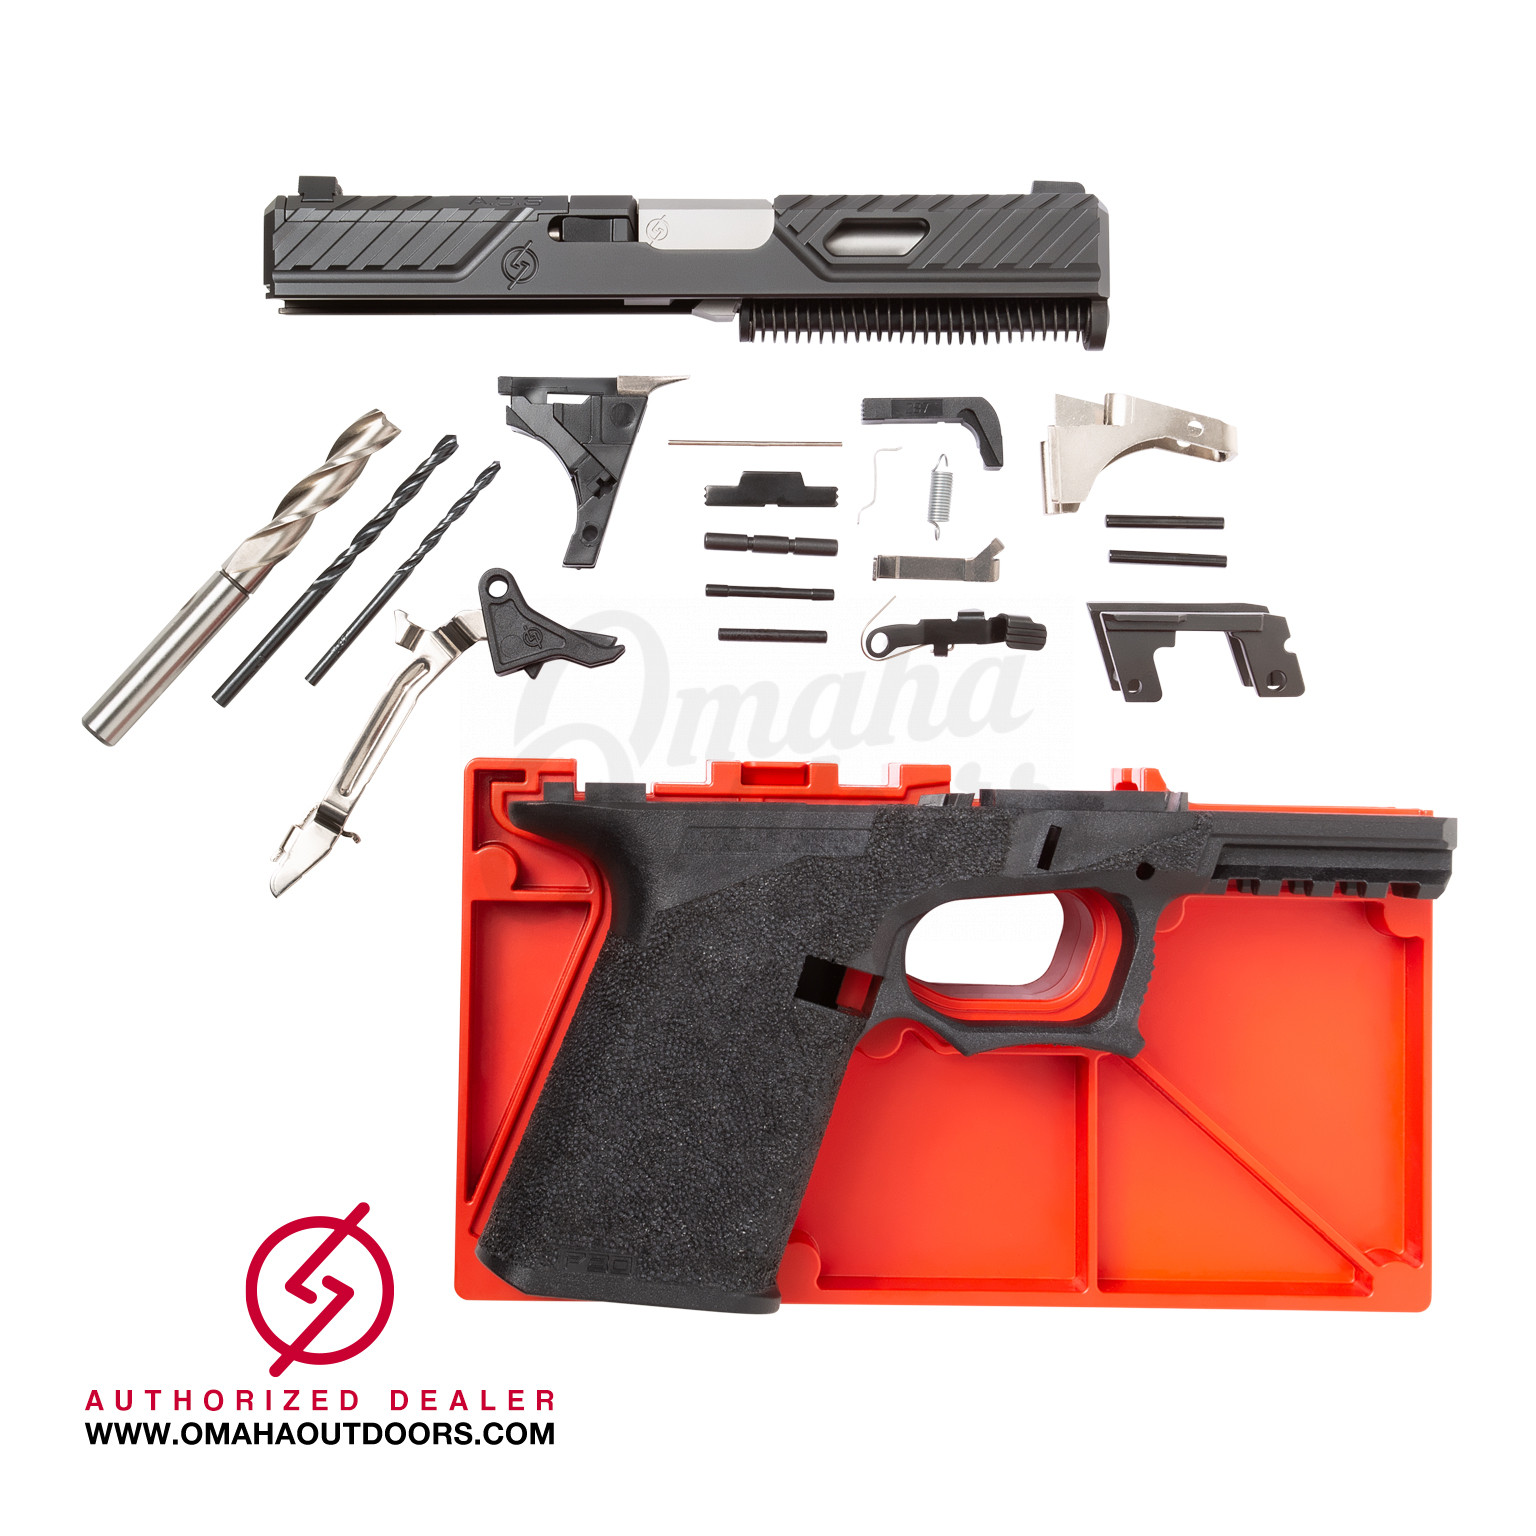 Syndicate S1 Compact Kit P80 Glock 19 80% Pistol 9mm SYN-S1-KIT